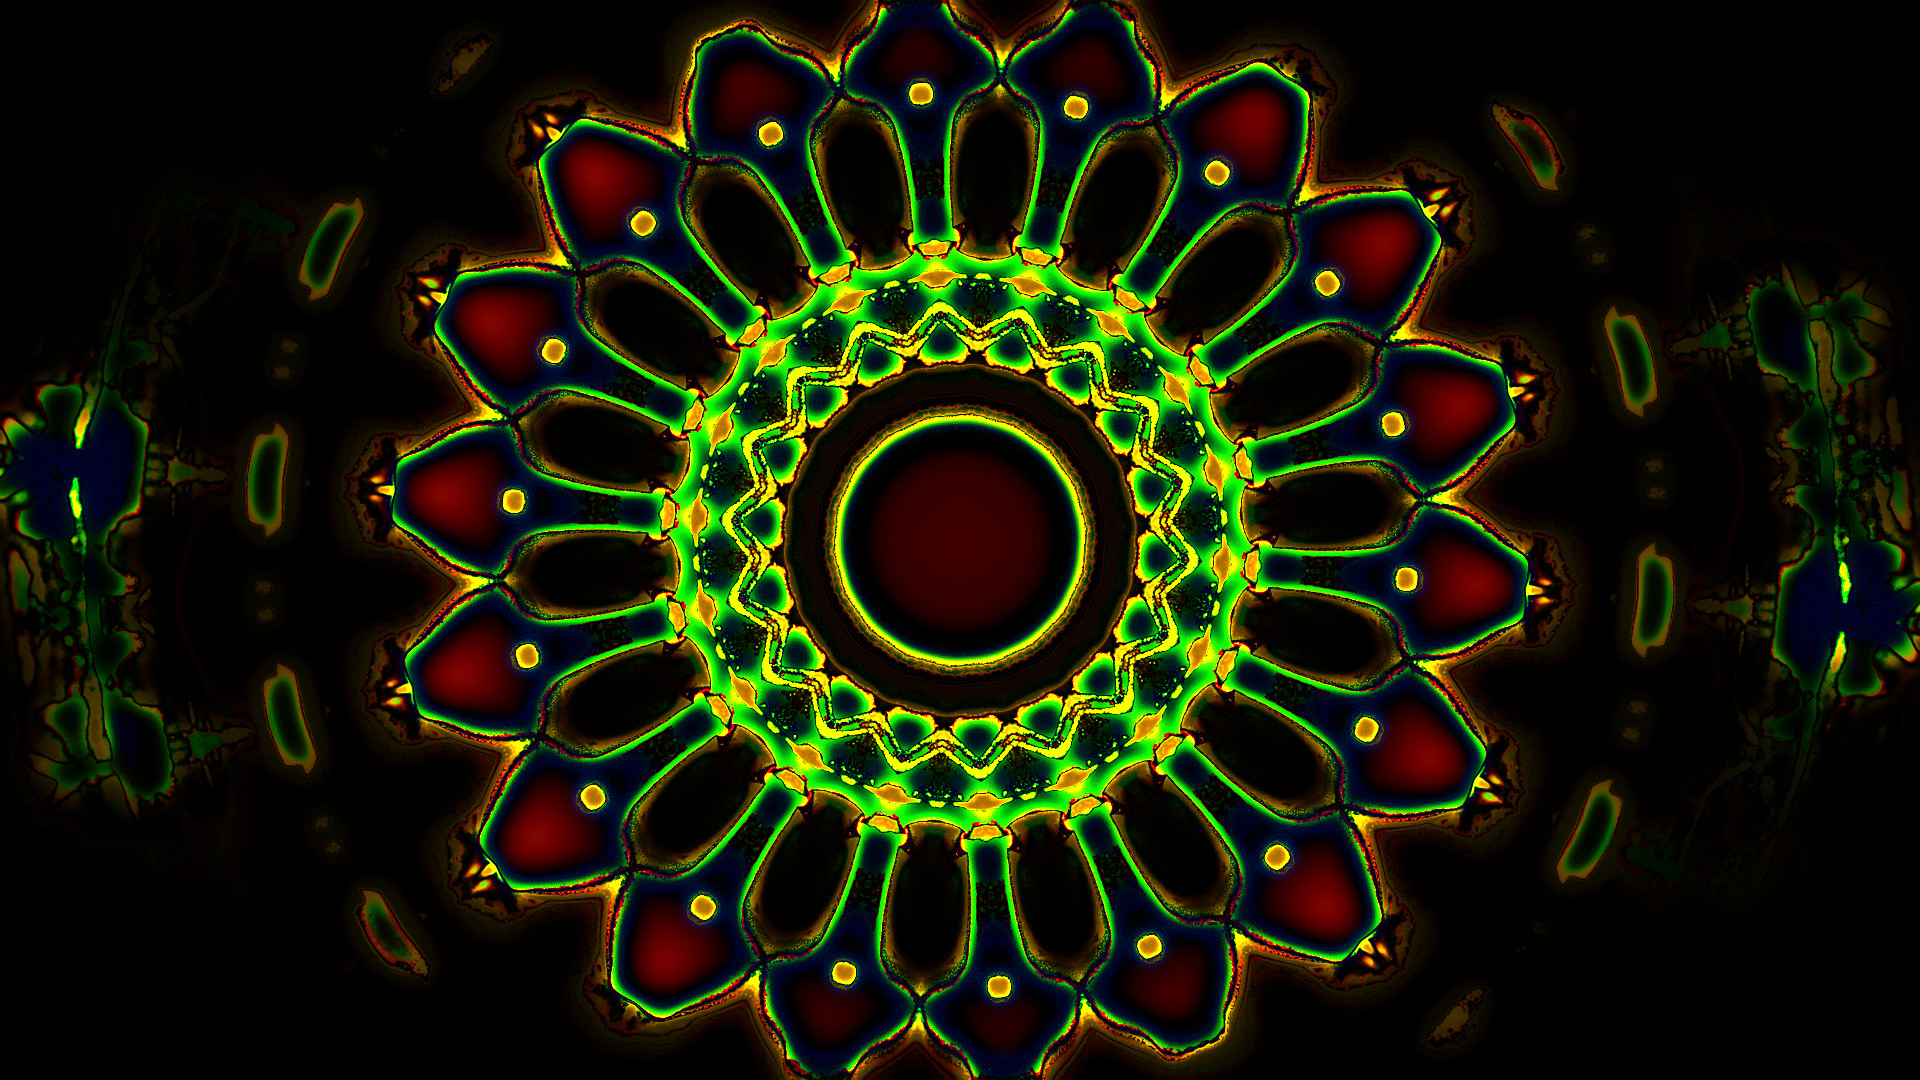 Trippy Hd Wallpapers 75 Pictures